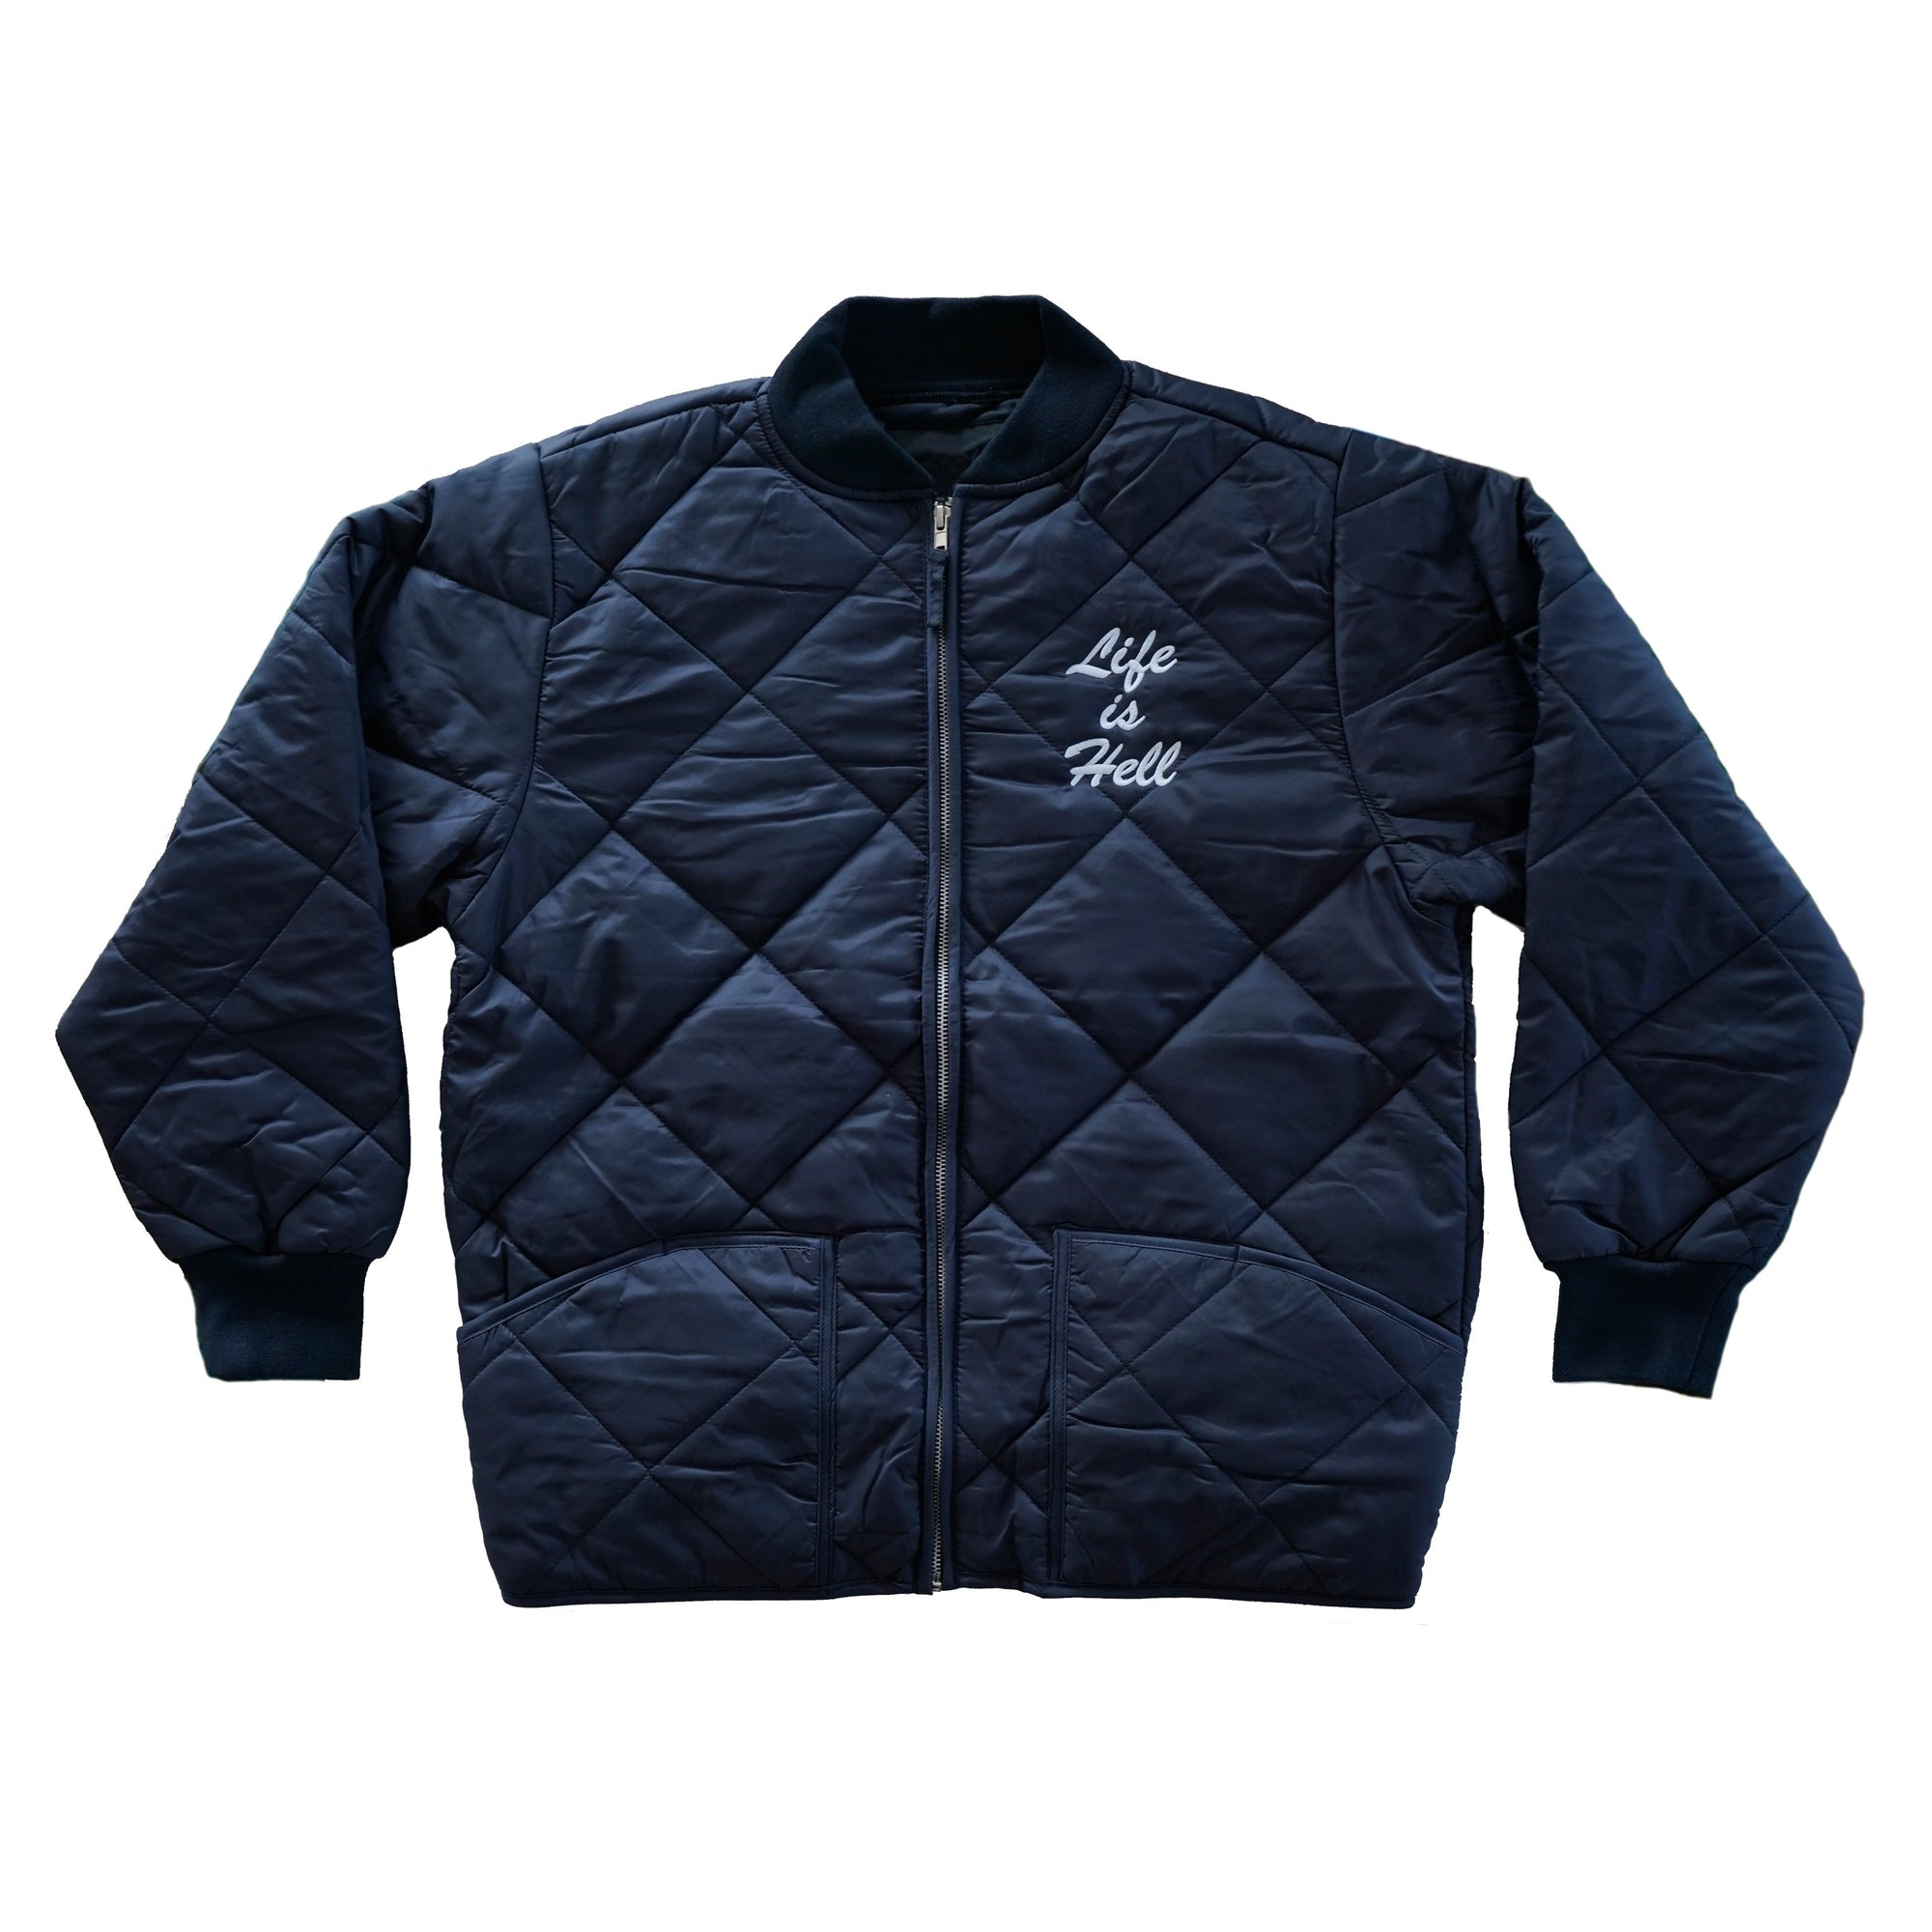 "Product photo of the official No Fun® ""Life Is Hell"" Quilted Bomber Jacket in the navy colourway.  The product is photographed on a white background, with the sleeves of the jacket folded over.  The jacket features the text ""Life Is Hell"" embroidered on the front of the jacket in white.  The jacket also features a zipper in the front, and full quilting on the entire outer shell."